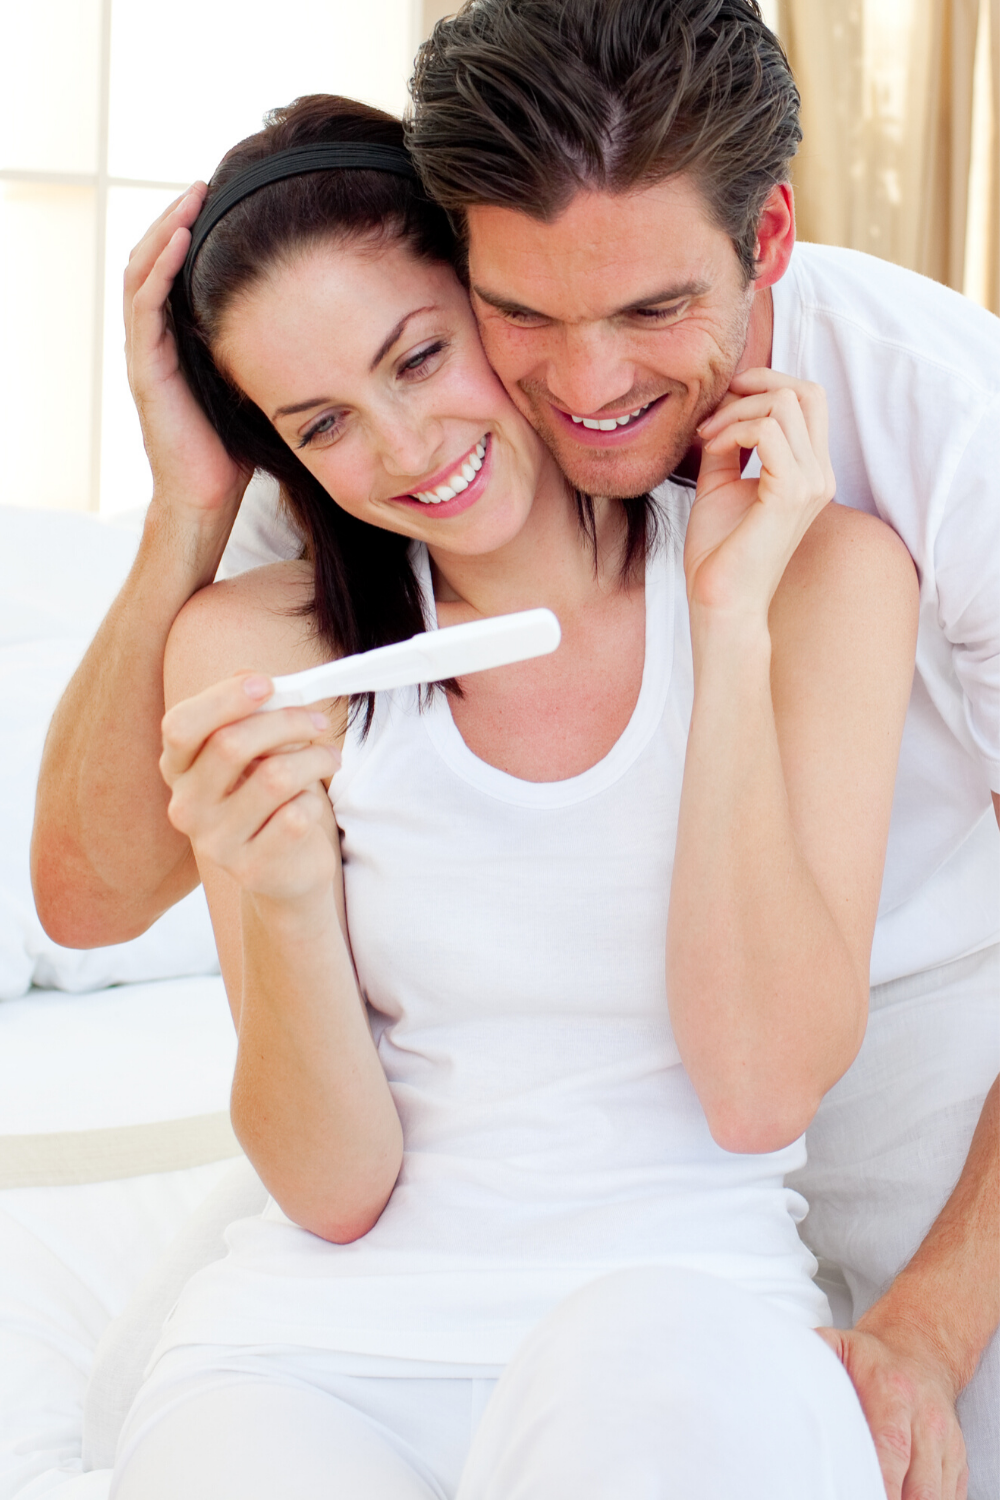 16 Sweet Ways to Tell Your Partner You're Pregnant